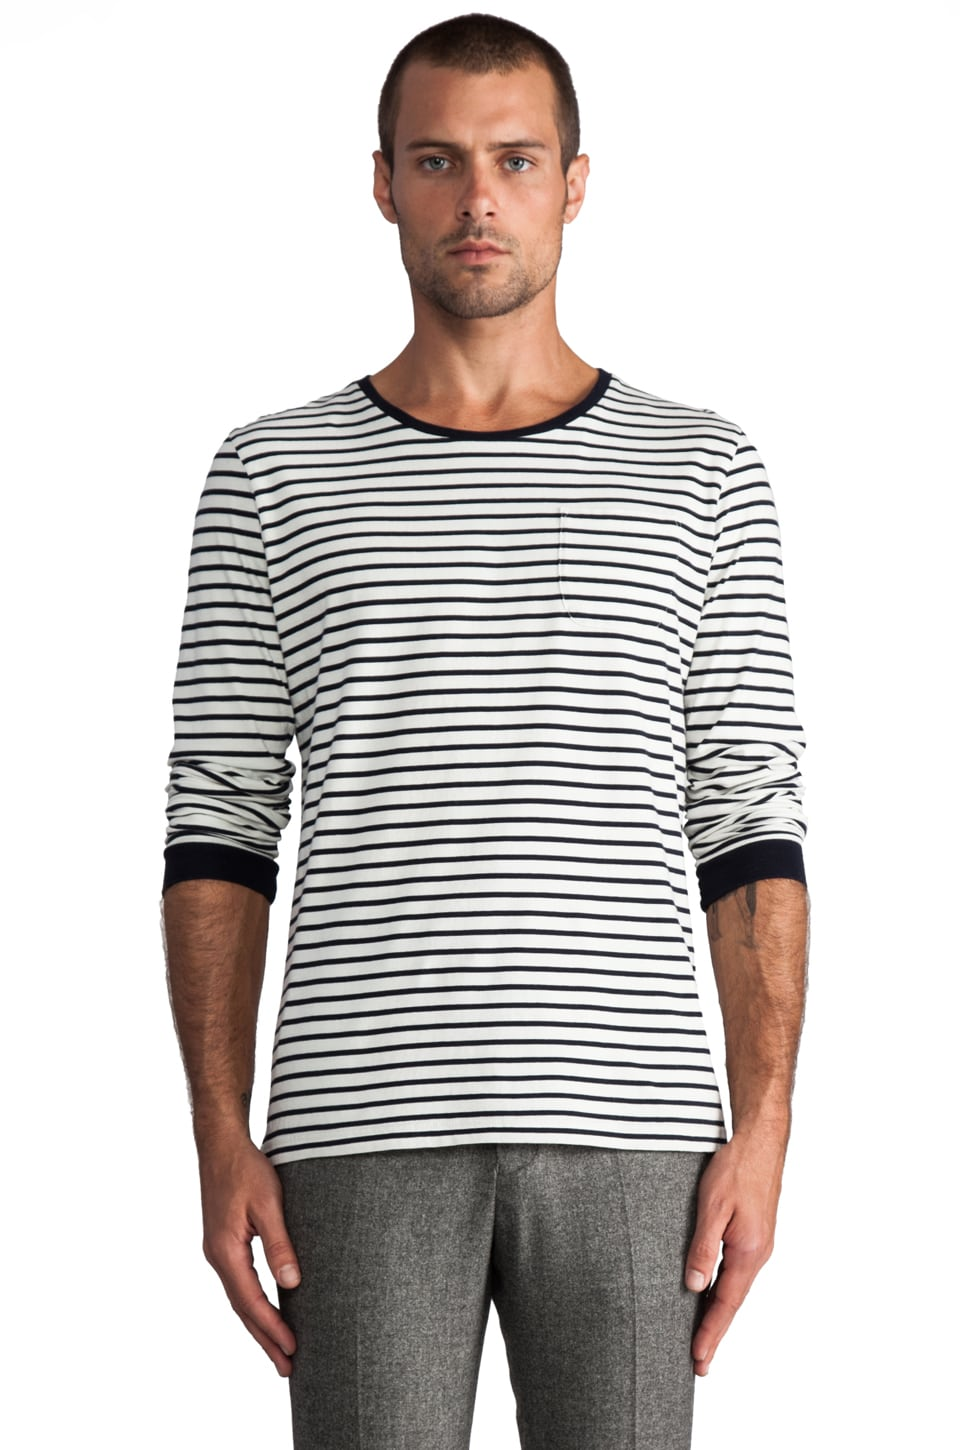 Hentsch Man Long Tee in Navy/White Stripe